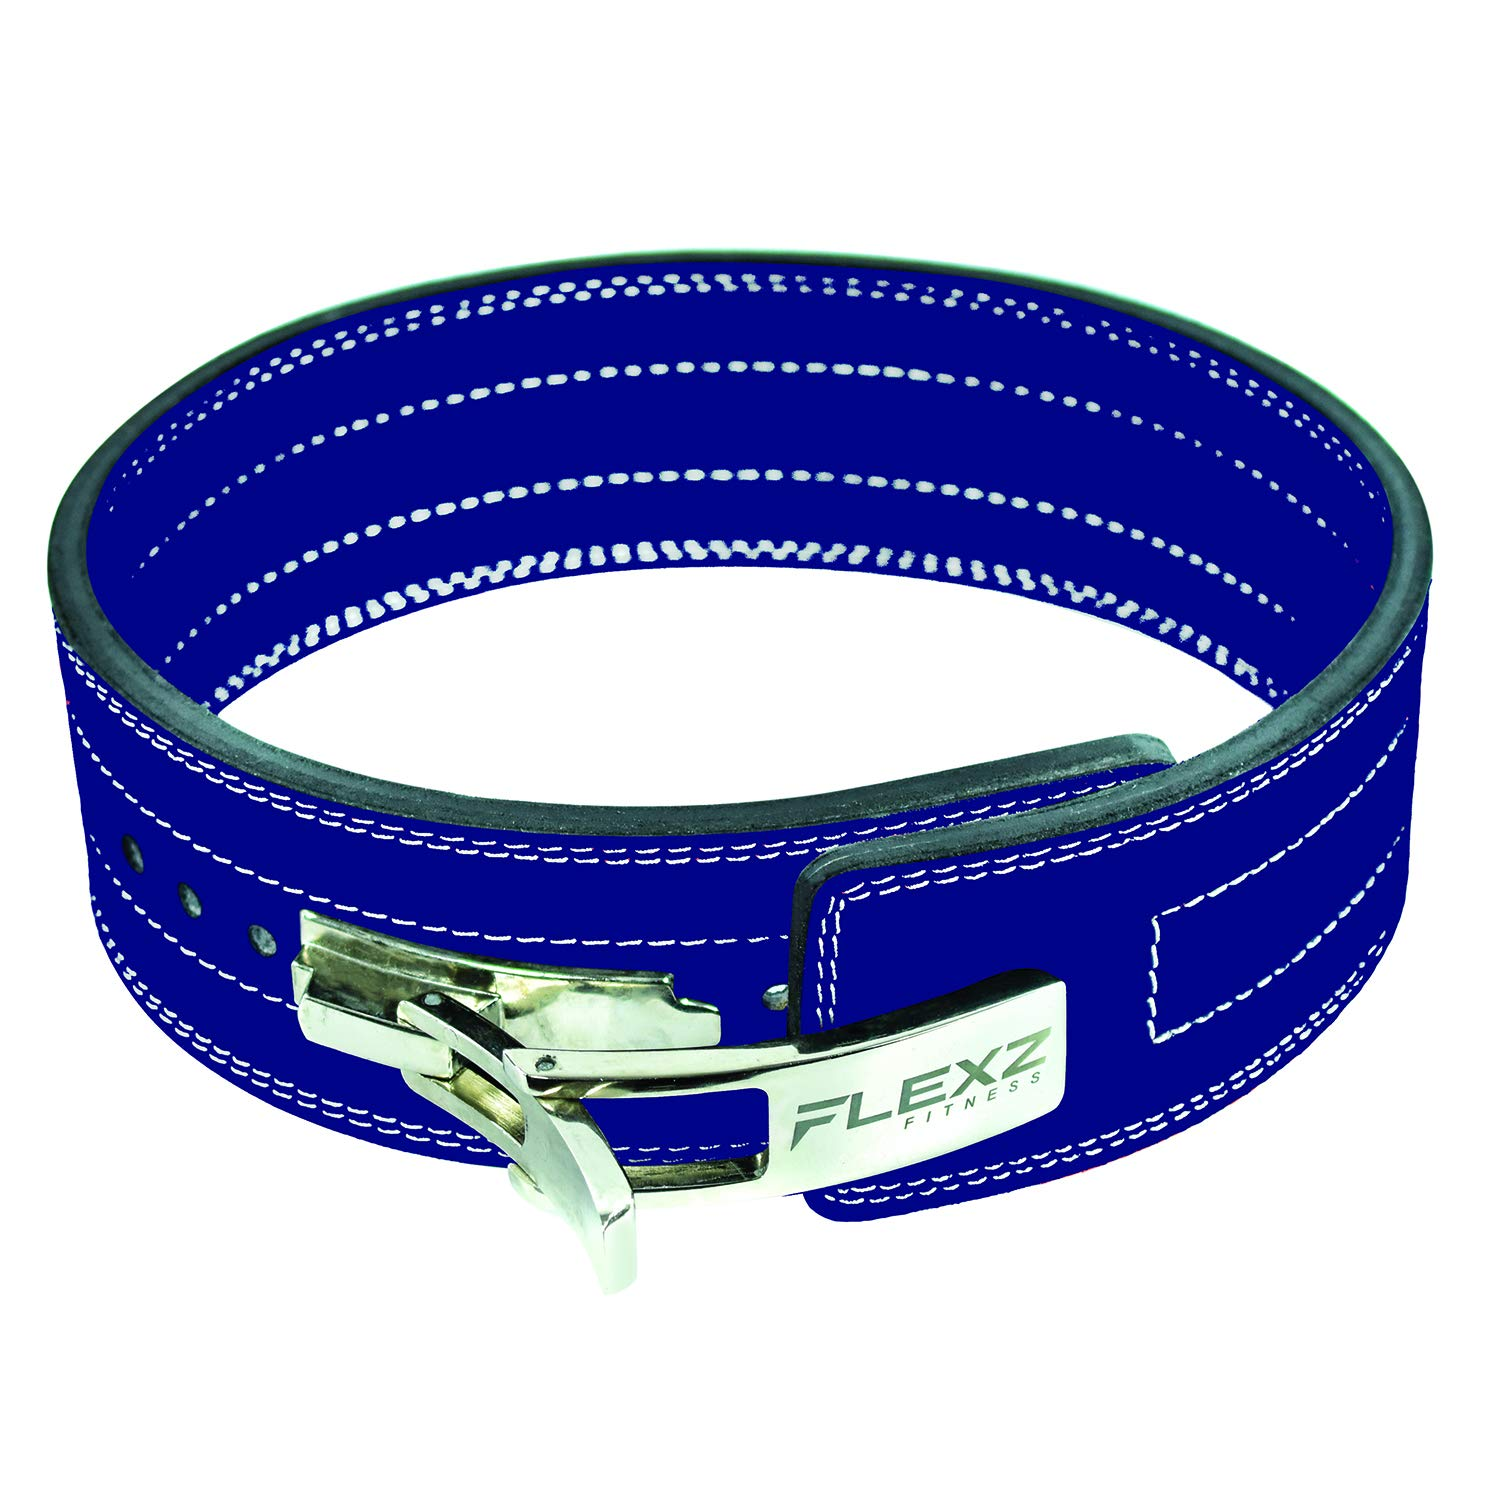 Flexz Fitness Lever Buckle Powerlifting Belt 10mm Weight Lifting Blue X Large by Flexz Fitness (Image #1)